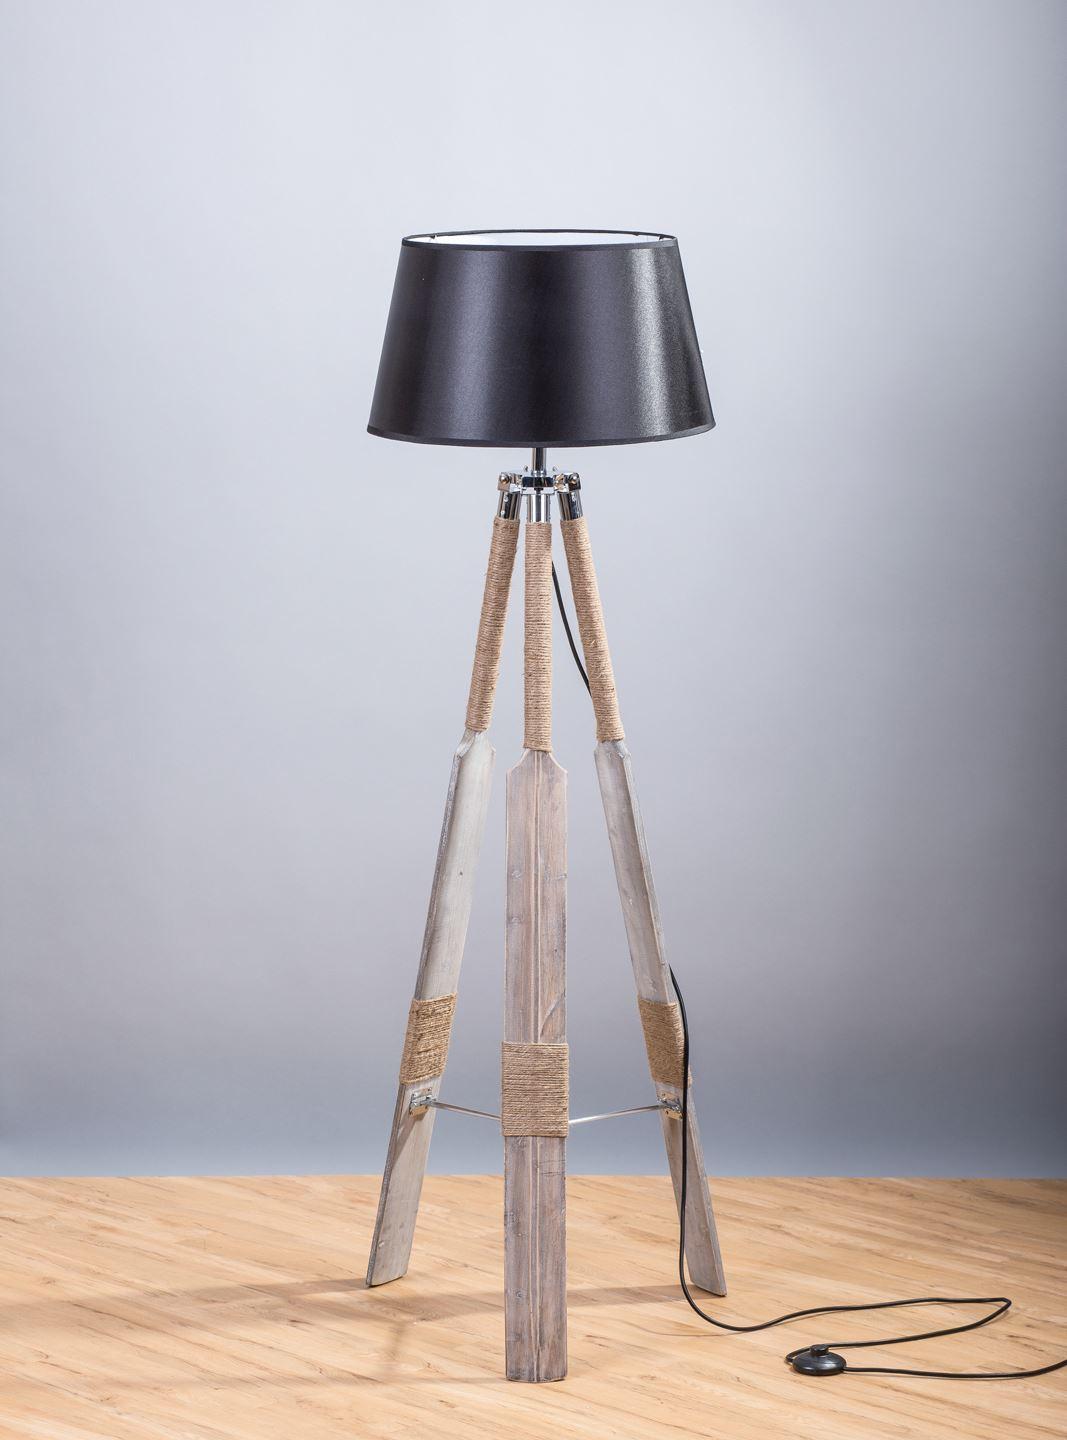 Modern Cloth Lampshade Black Living Room Kitchen Lamps Floor Lamps EBay